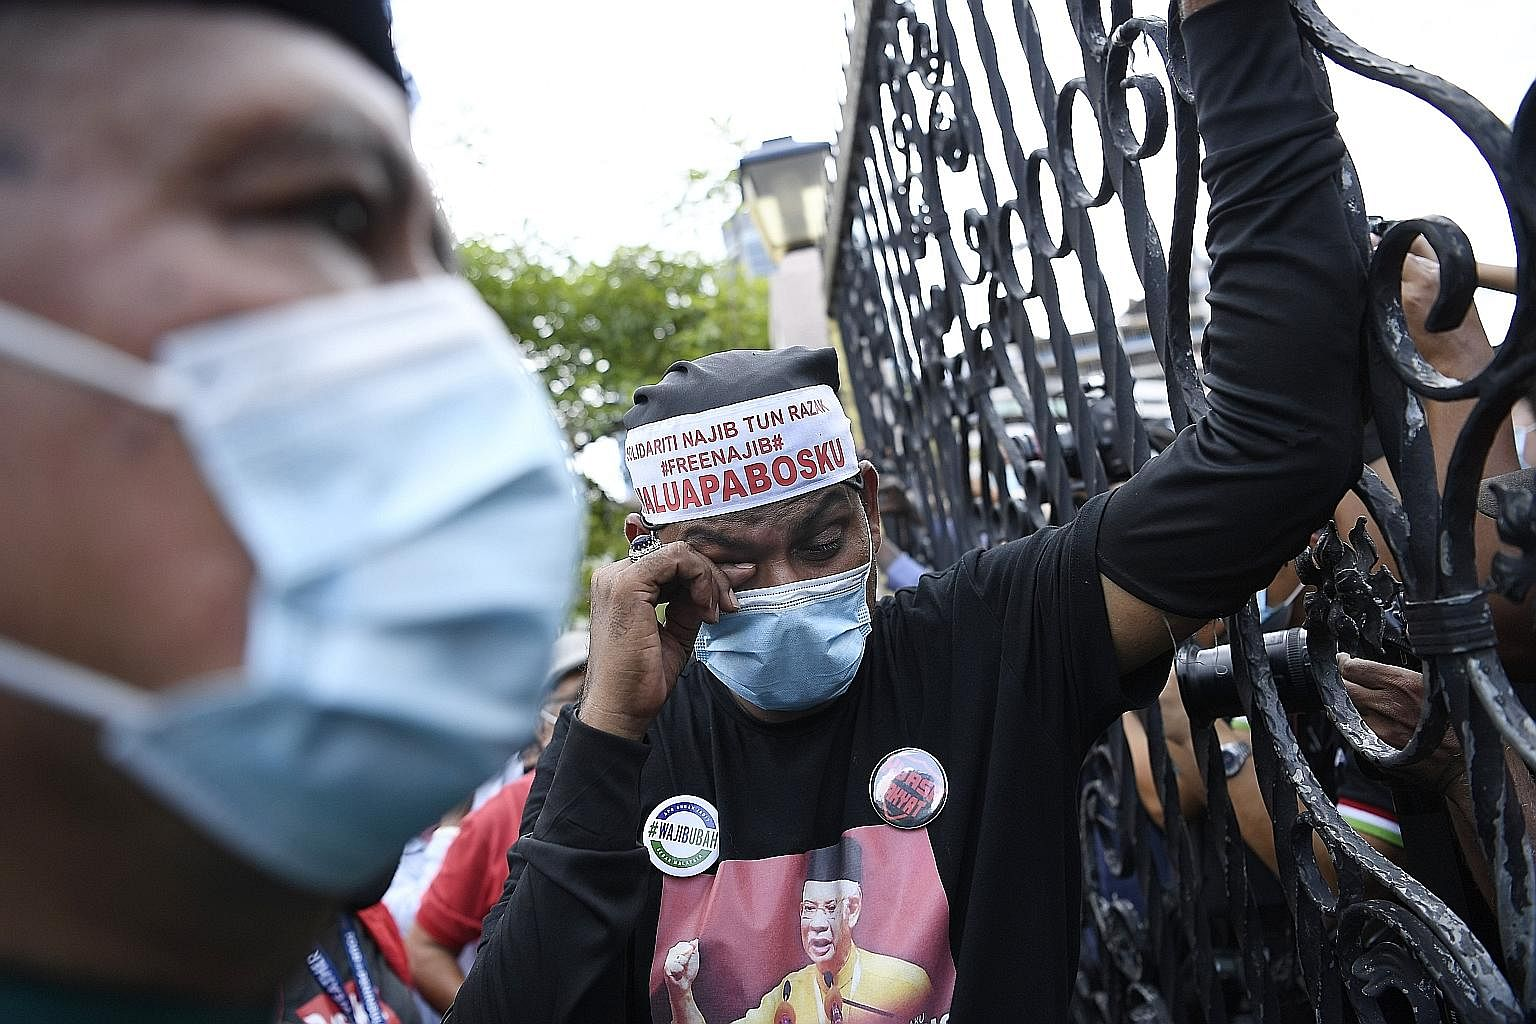 A Najib supporter reacting to the news of the court ruling on Tuesday. Hundreds had crowded the High Court compound to support the former premier. Though Najib still faces another four criminal trials, he remains a popular figure in Malaysia, with hi